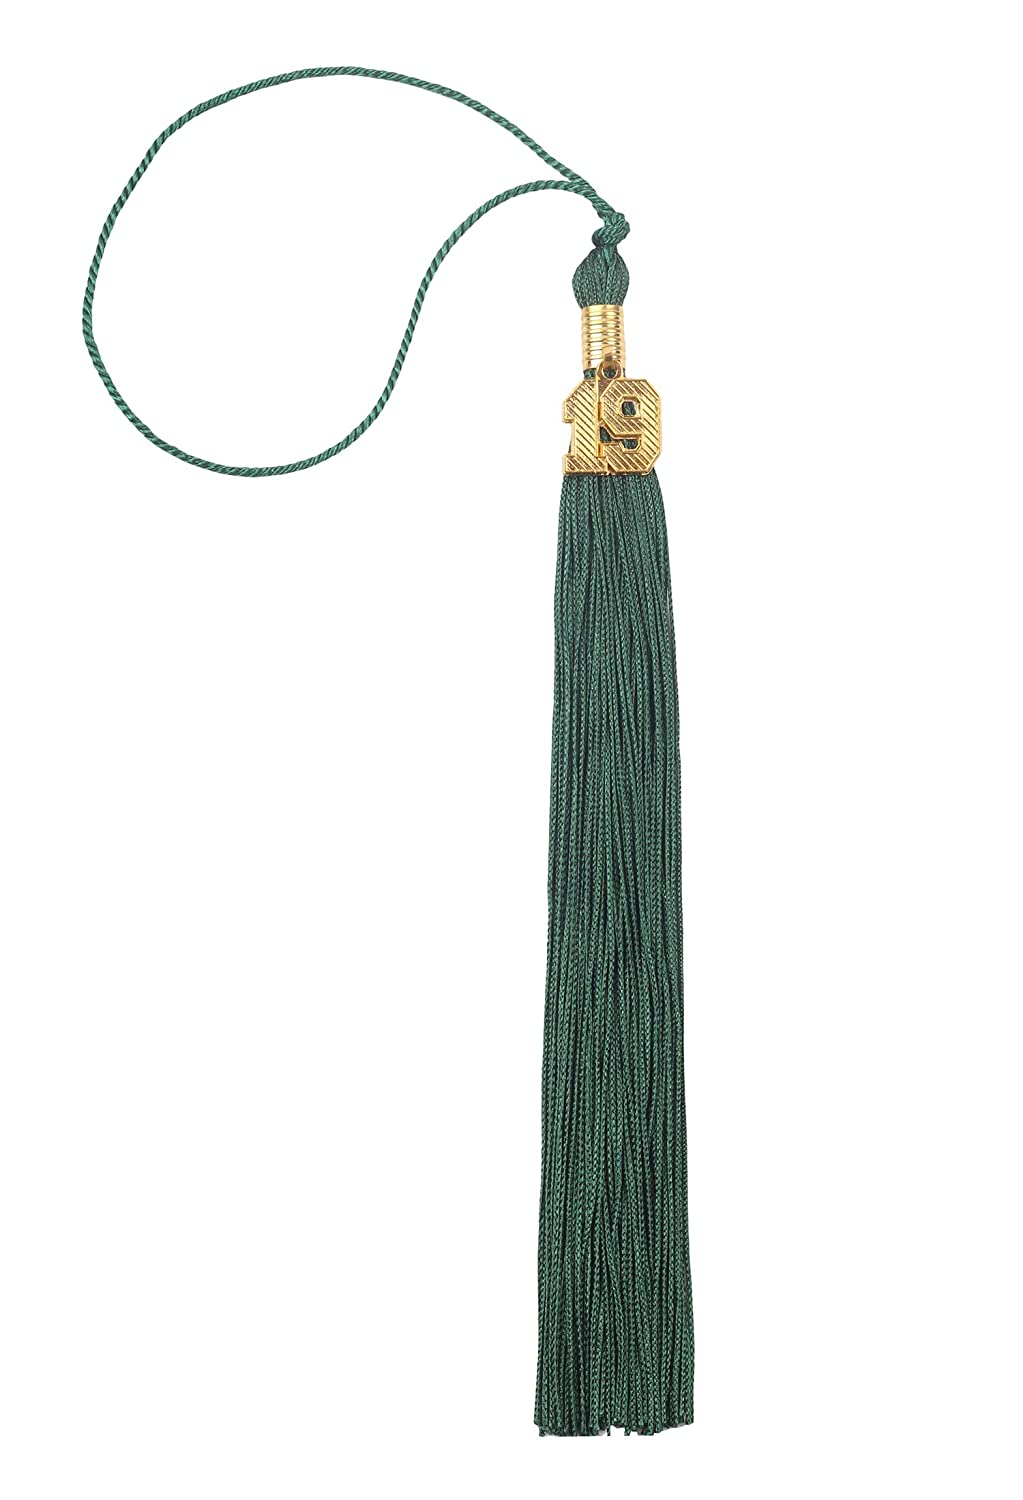 Single Color Graduation Tassel with Gold 19 Year Charm